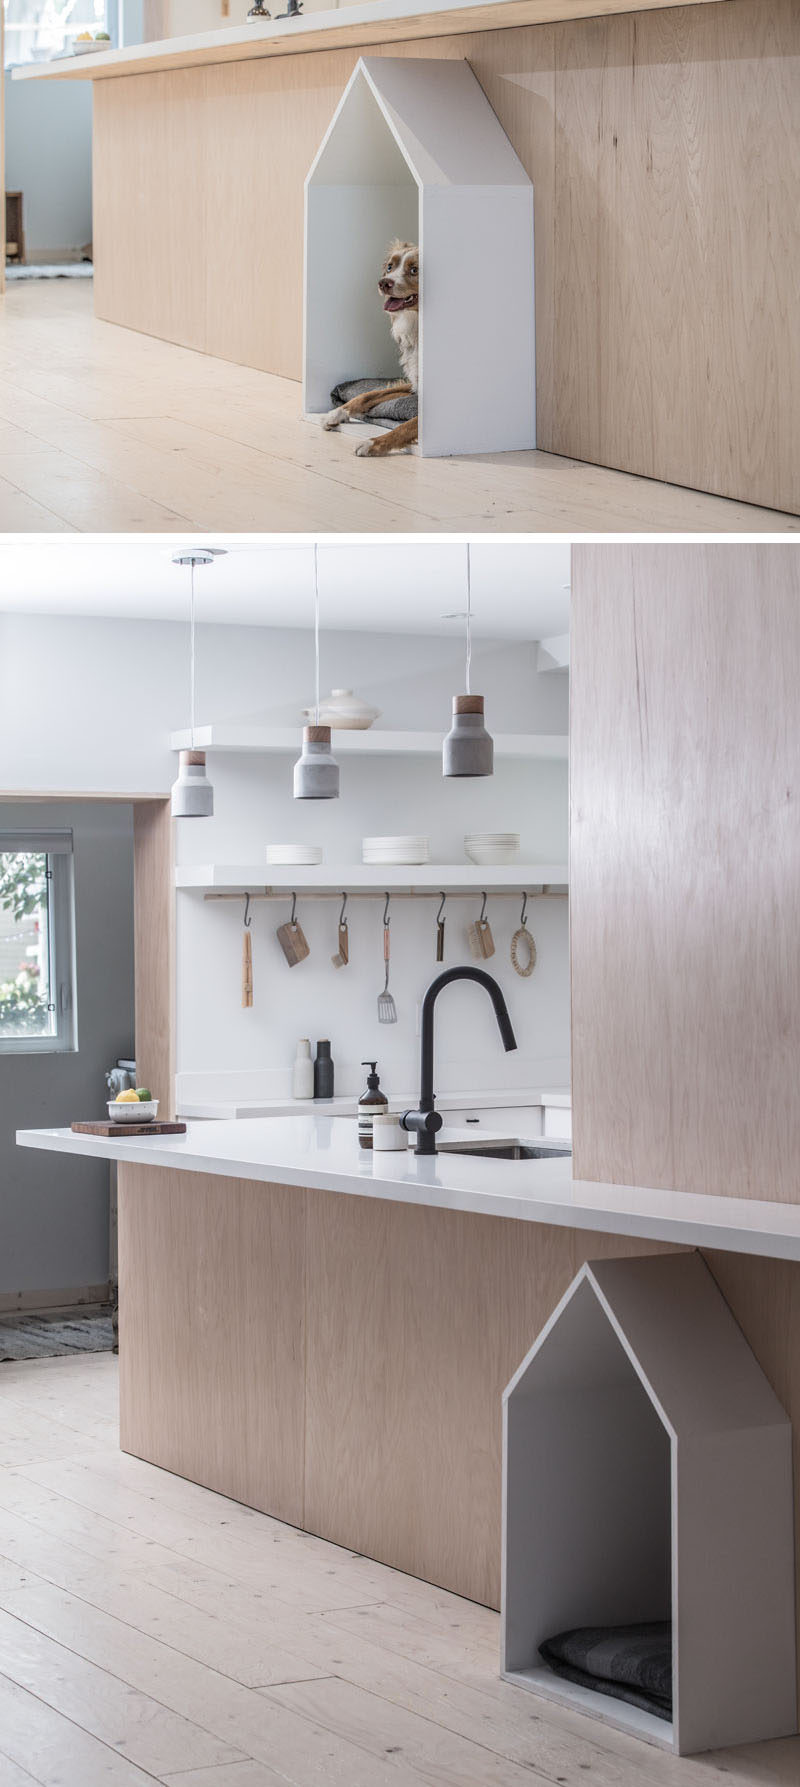 When Studio AC were designing the renovation of a house in Toronto, they made sure to include a design element for the family pup, that consists of a little white dog house built-into the surrounding plywood design element. #DogHouse #BuiltInDogHouse #DogBed #InteriorDesign